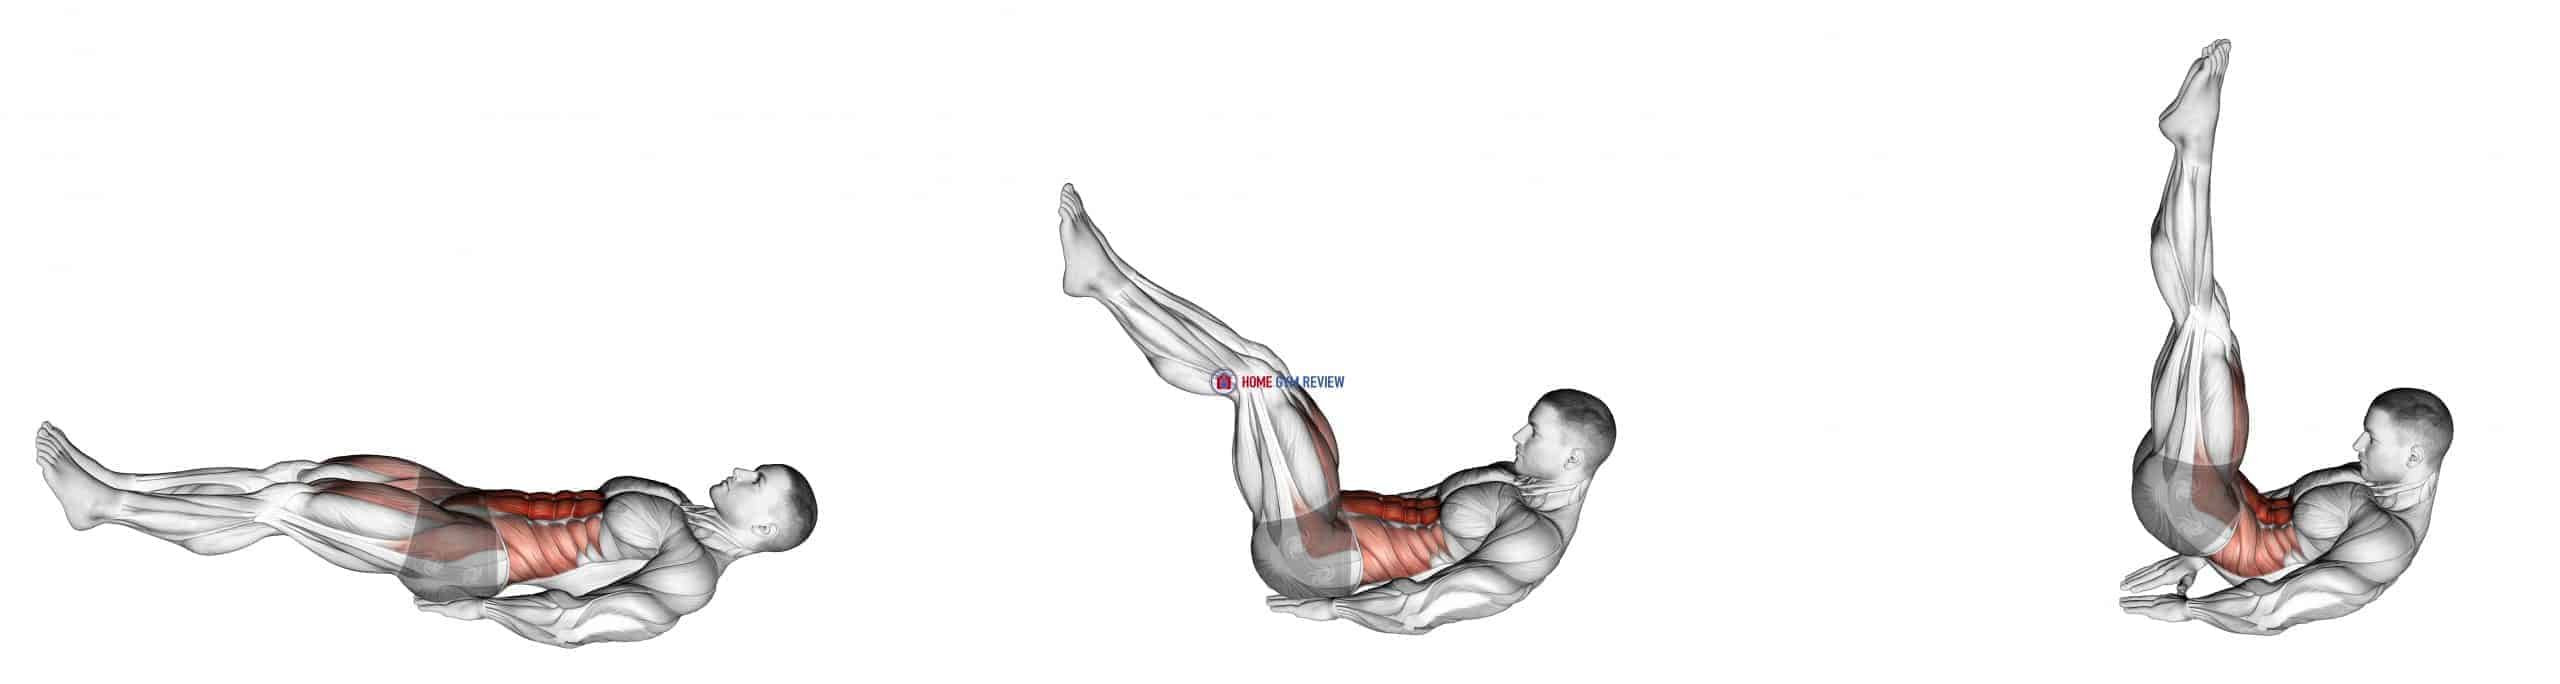 Leg Raise Hip Lift with Head up